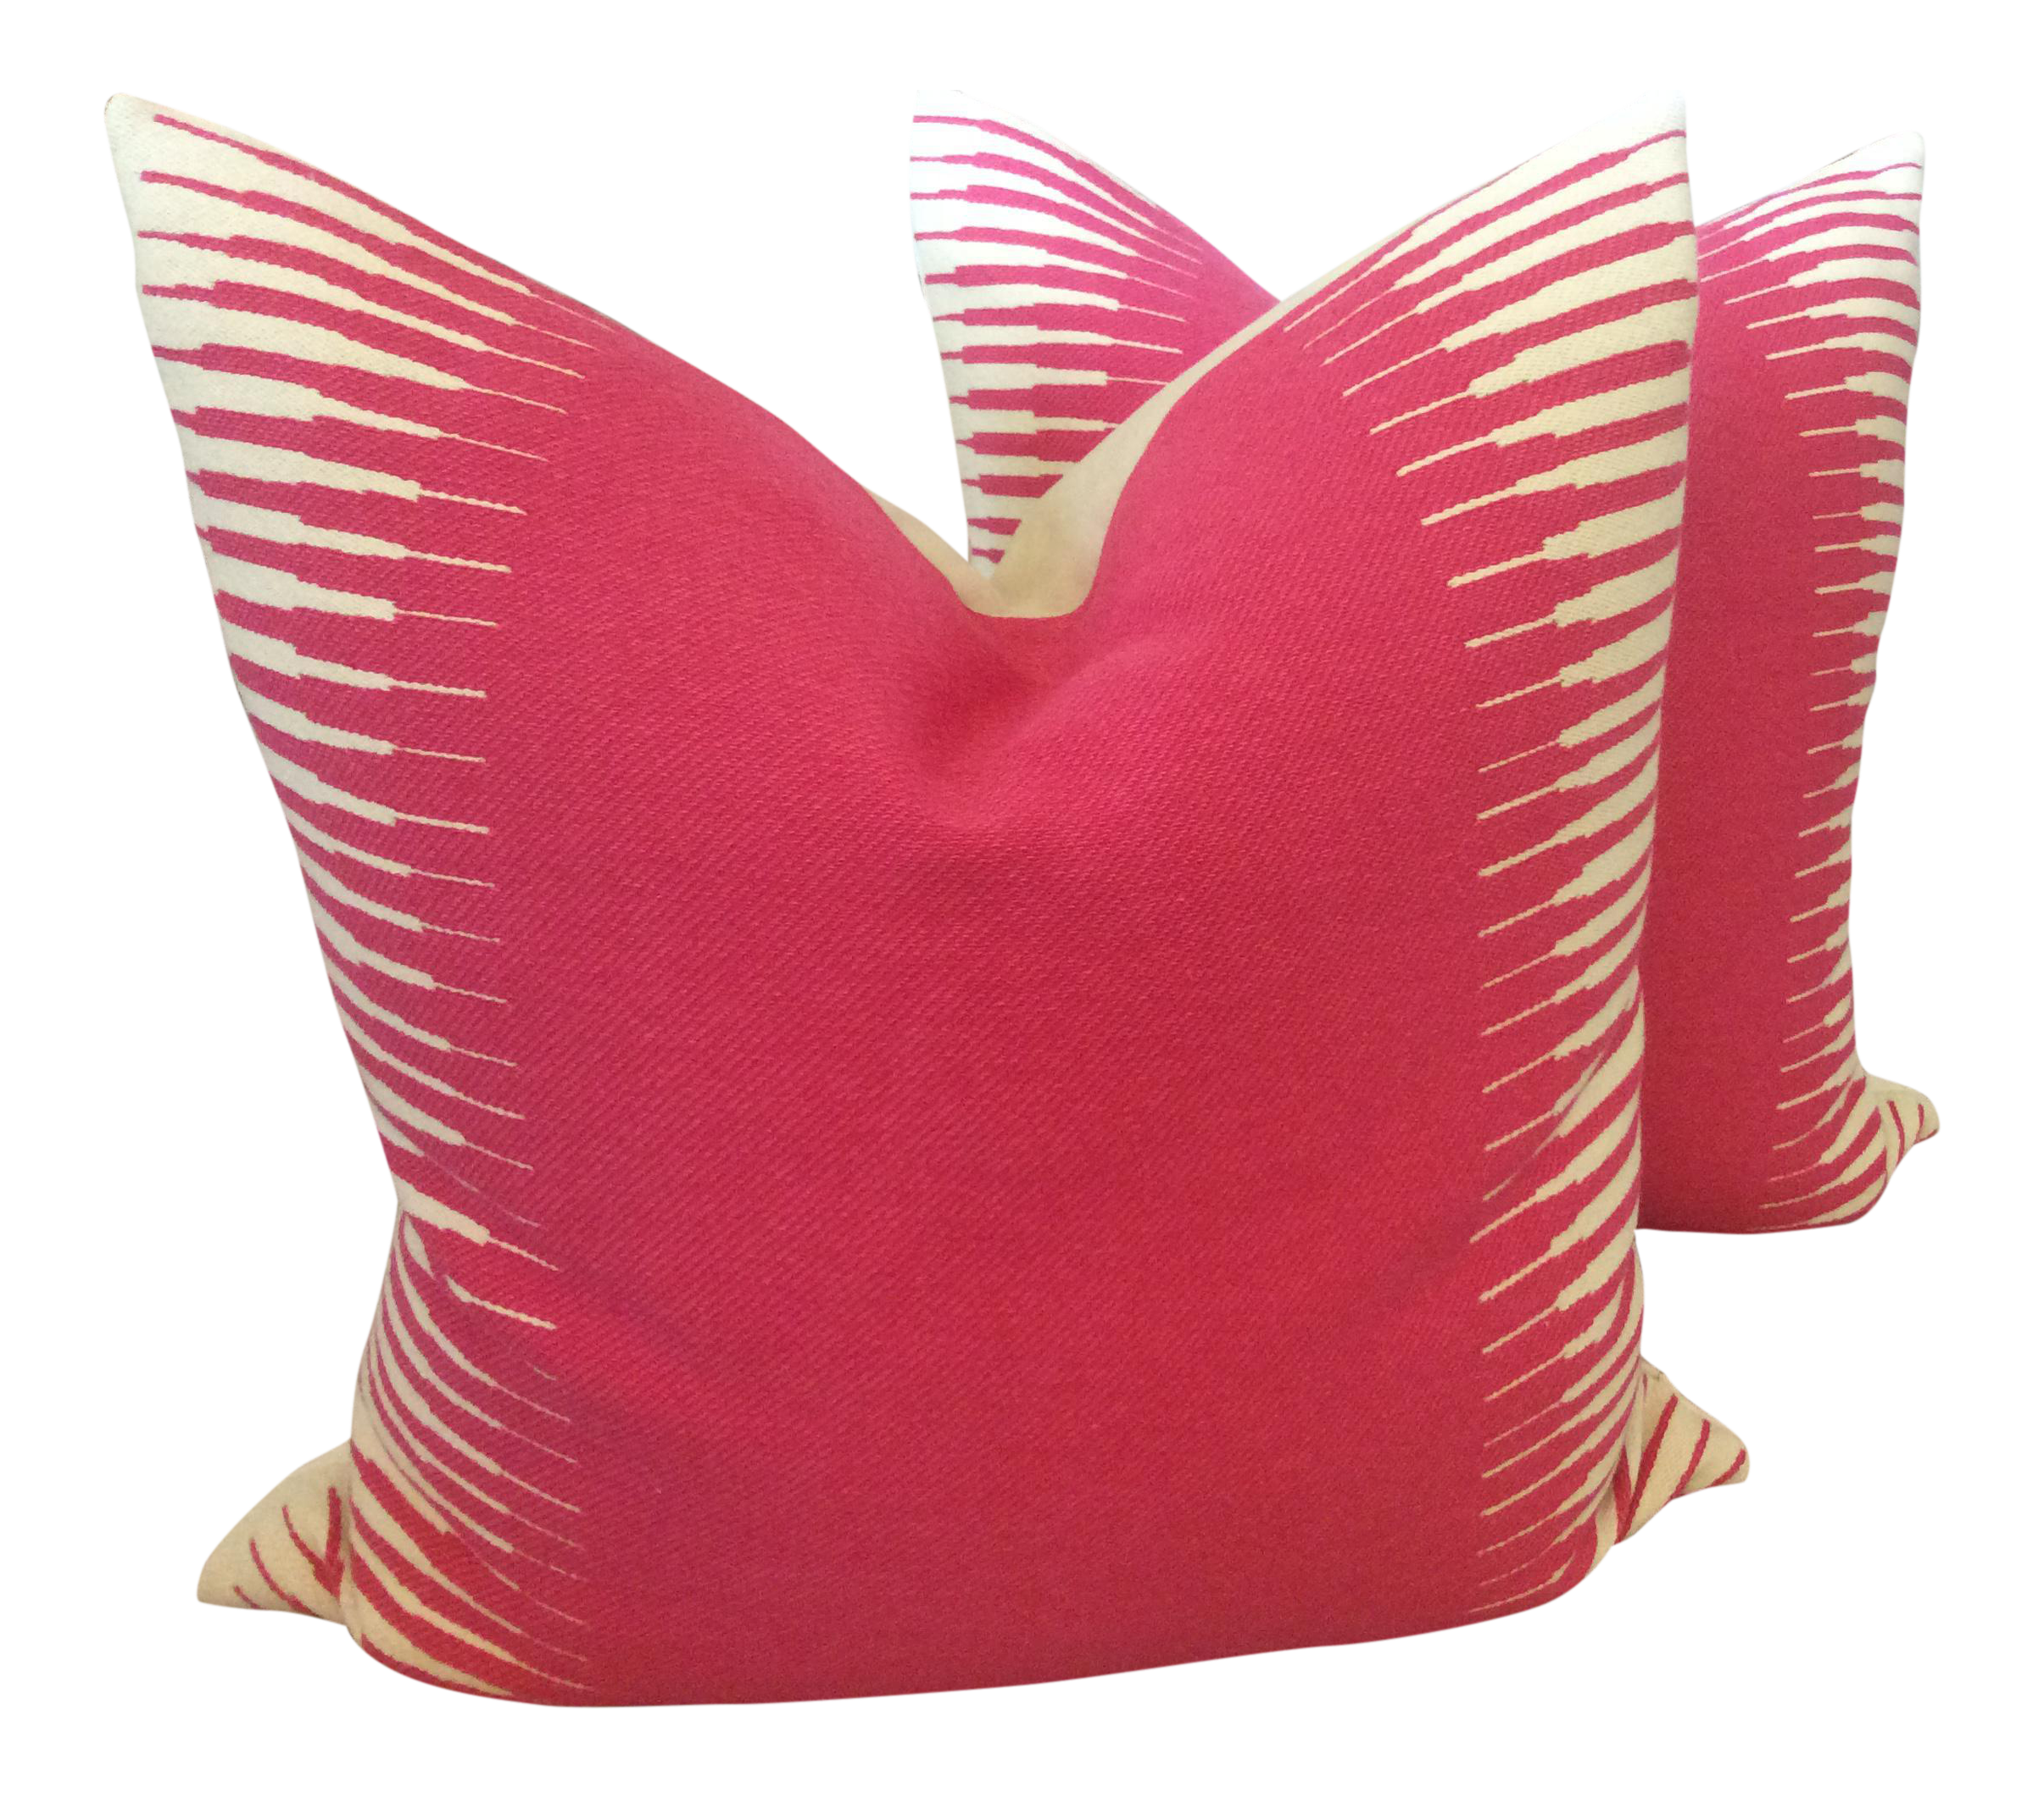 manuel canovas kazan in rose indien down filled pillows  a pair. vintage  used pink pillows  chairish